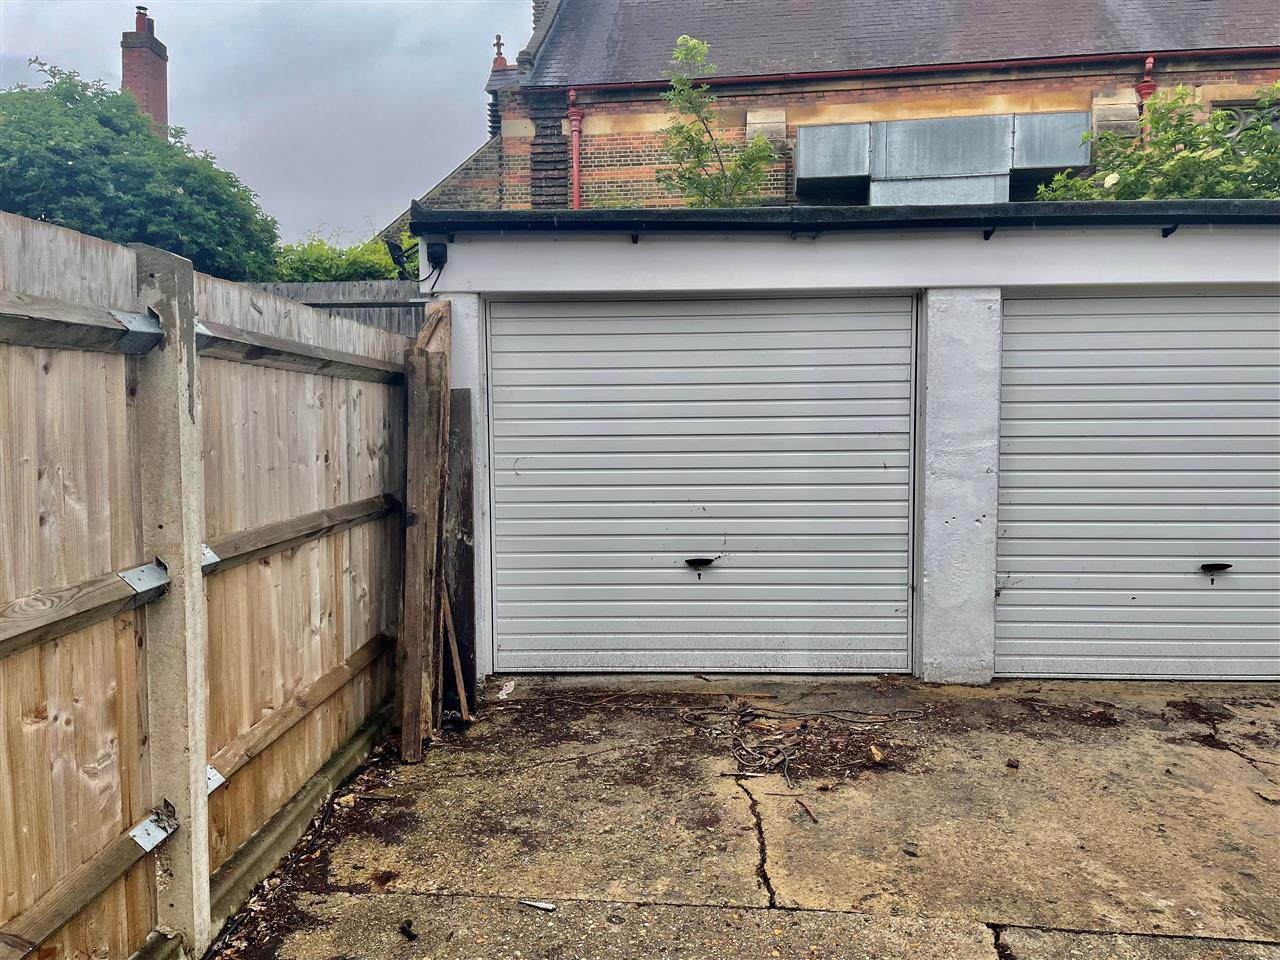 Garages for sale in Chetwynd Road, London, NW5